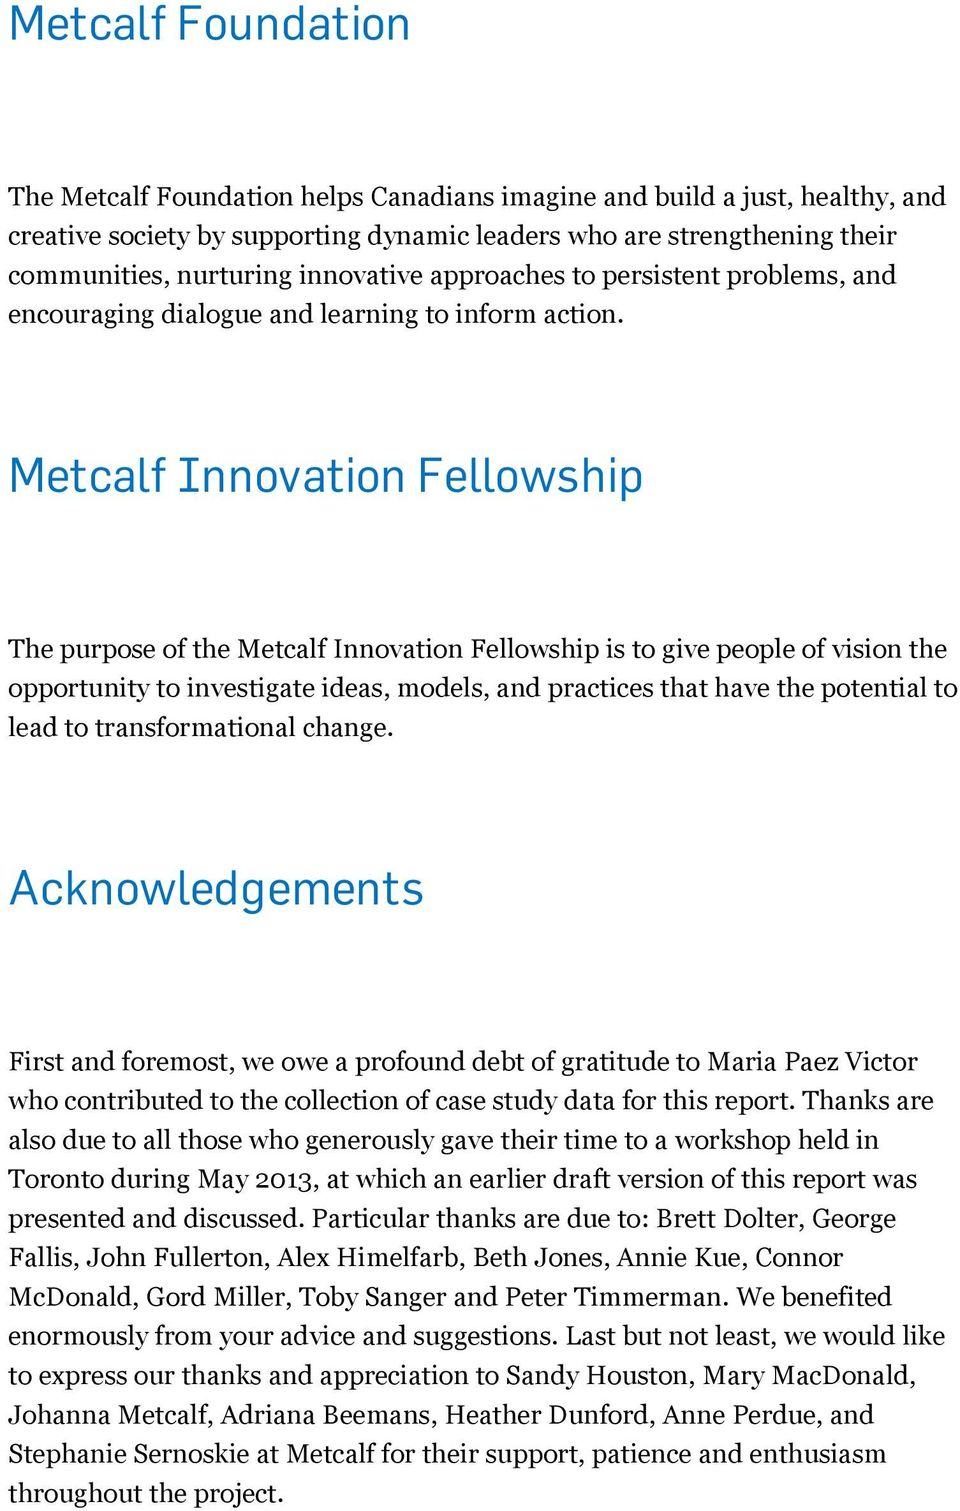 Metcalf Innovation Fellowship The purpose of the Metcalf Innovation Fellowship is to give people of vision the opportunity to investigate ideas, models, and practices that have the potential to lead